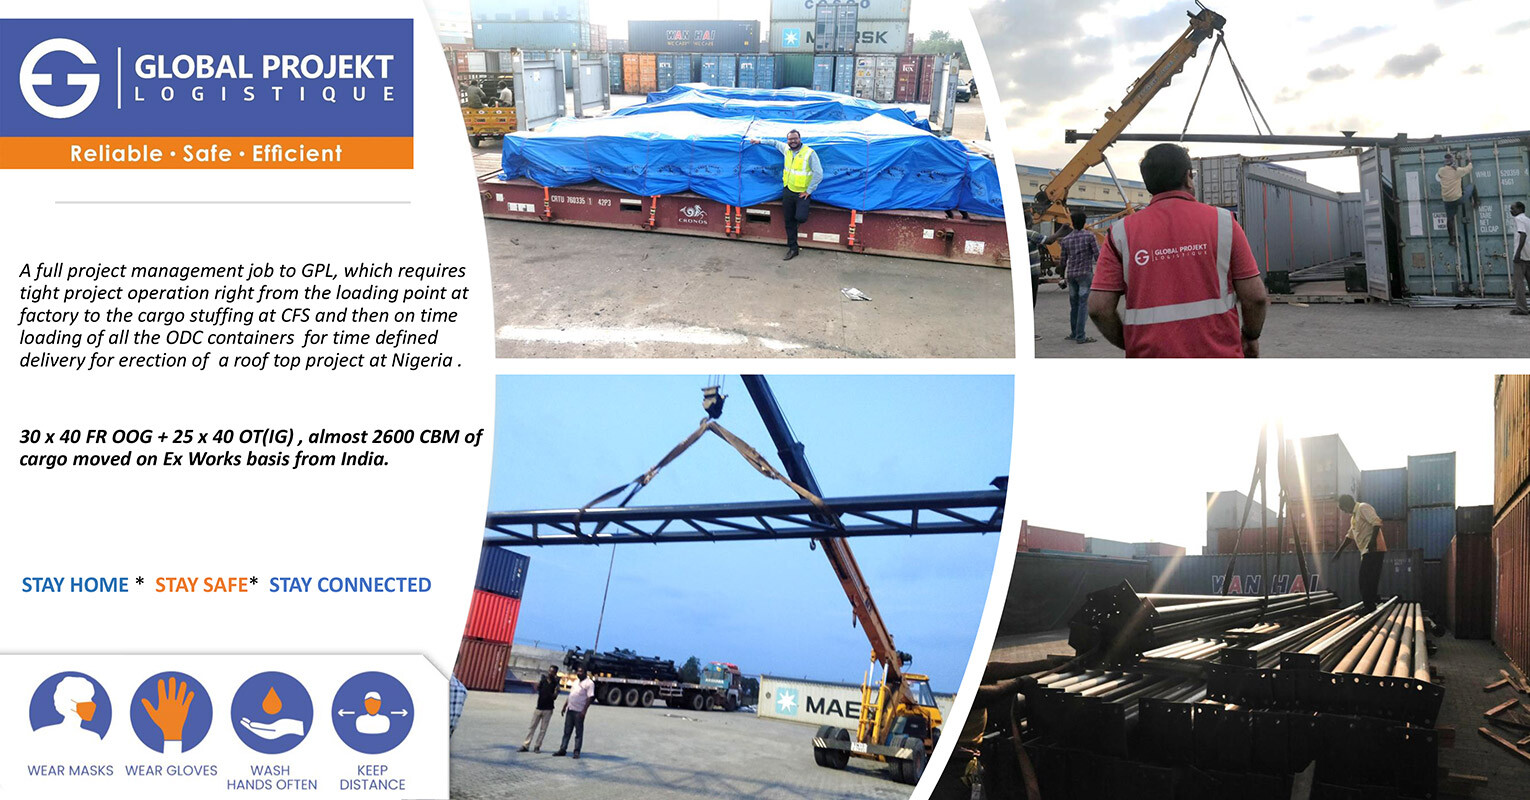 Global Projekt Lgistique Recently Shipped Apapa for a Roof Top Project for Nigeria 1